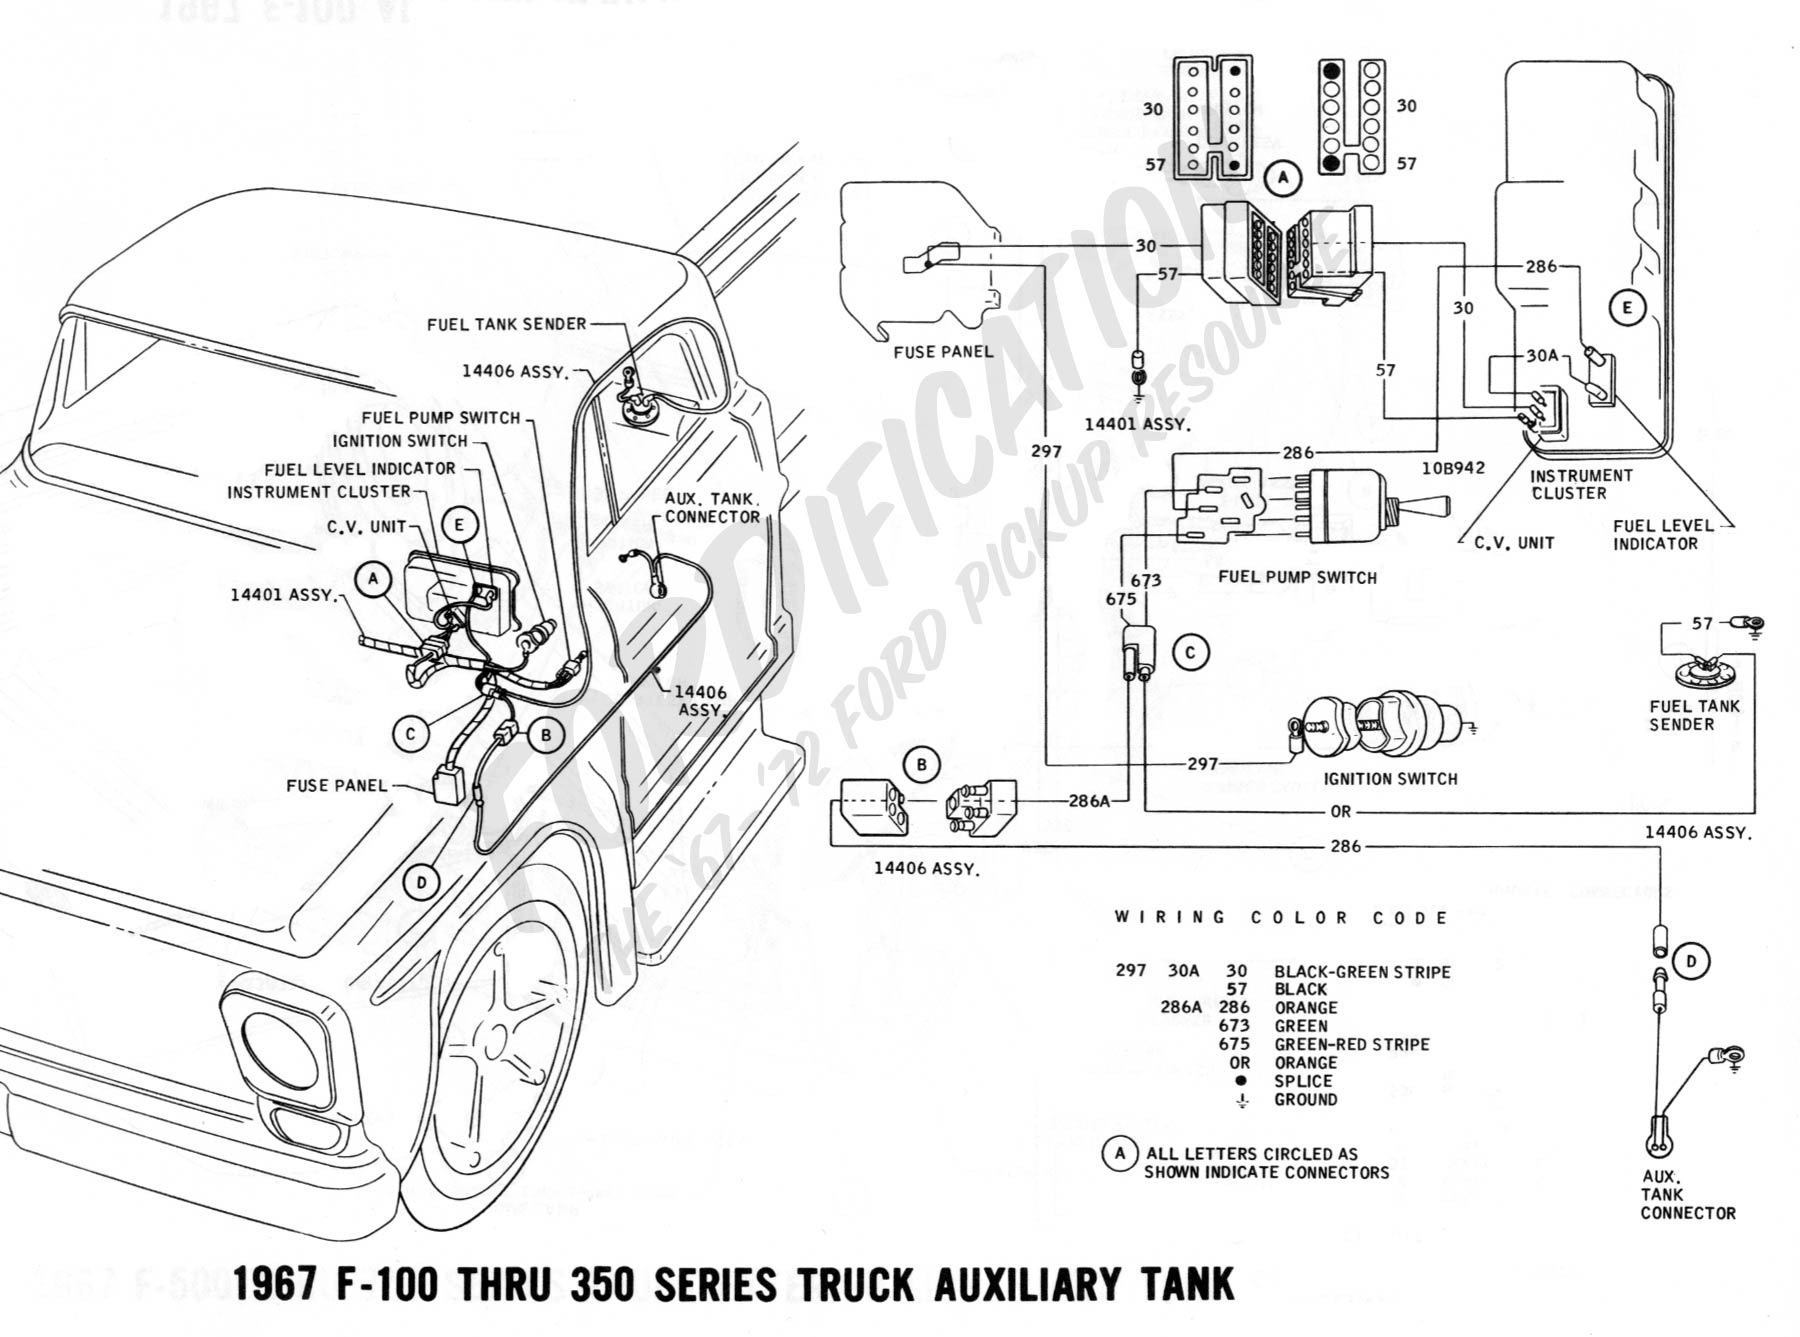 ford truck technical drawings and schematics section h wiring rh fordification com Ford 351 Distributor Wiring Diagram Ford V-8 Distributor Wiring